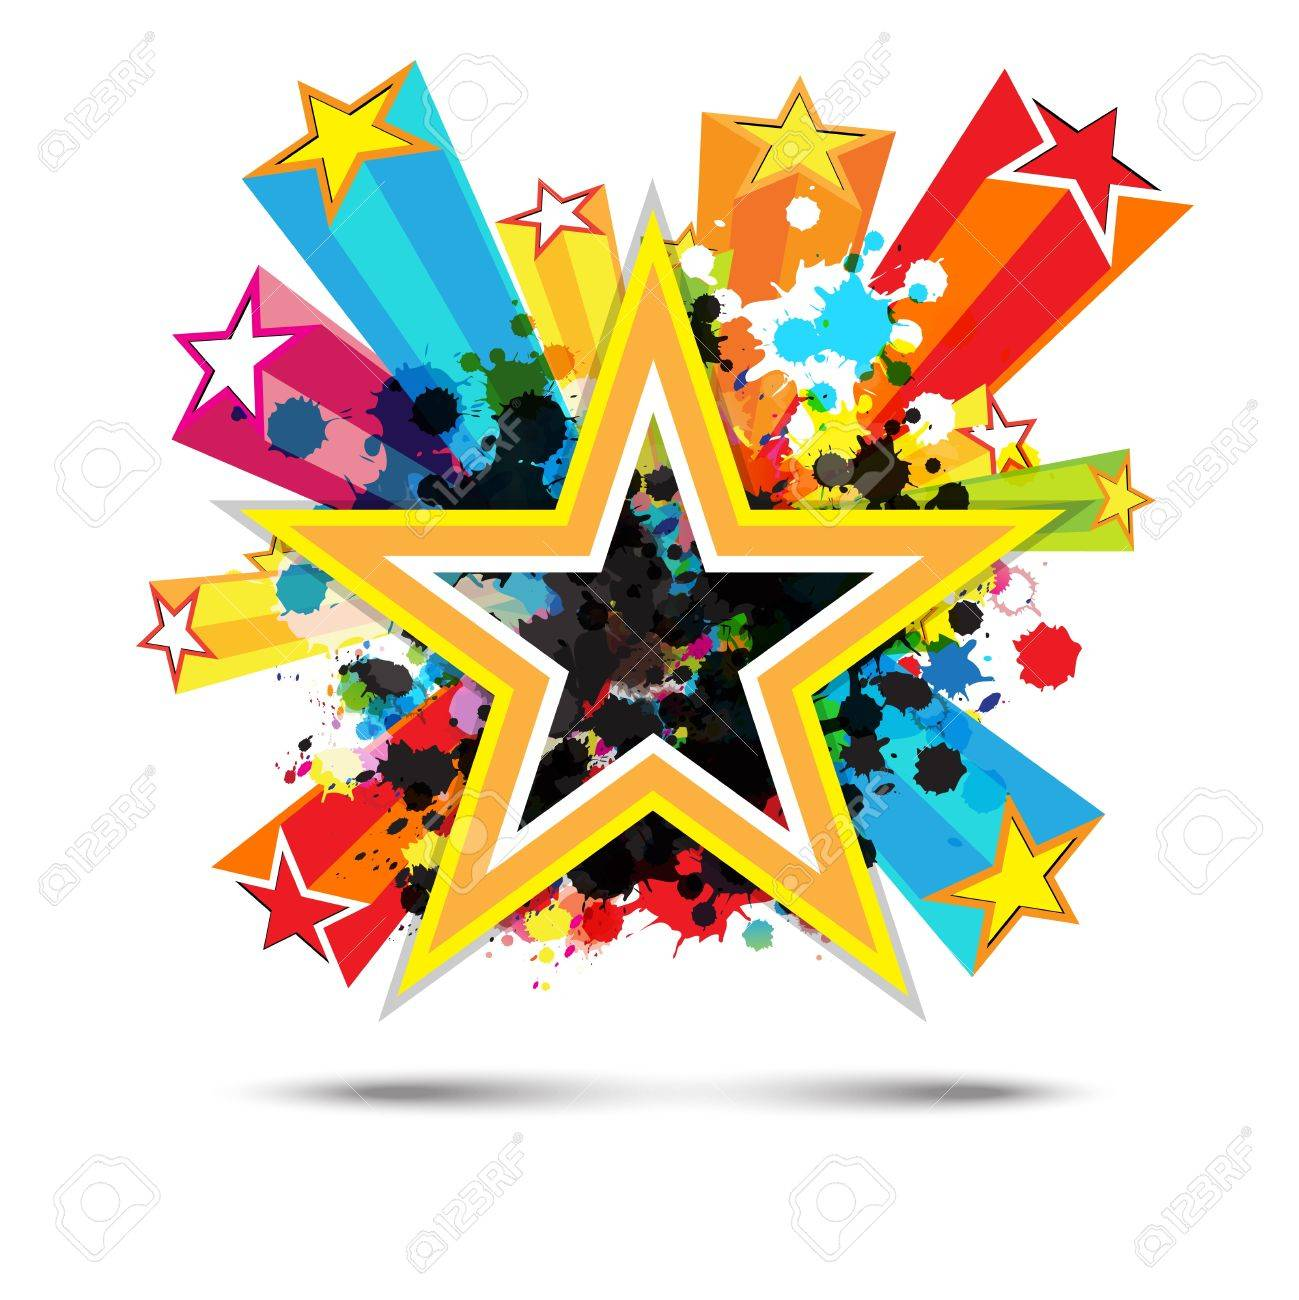 abstract celebration star background design.